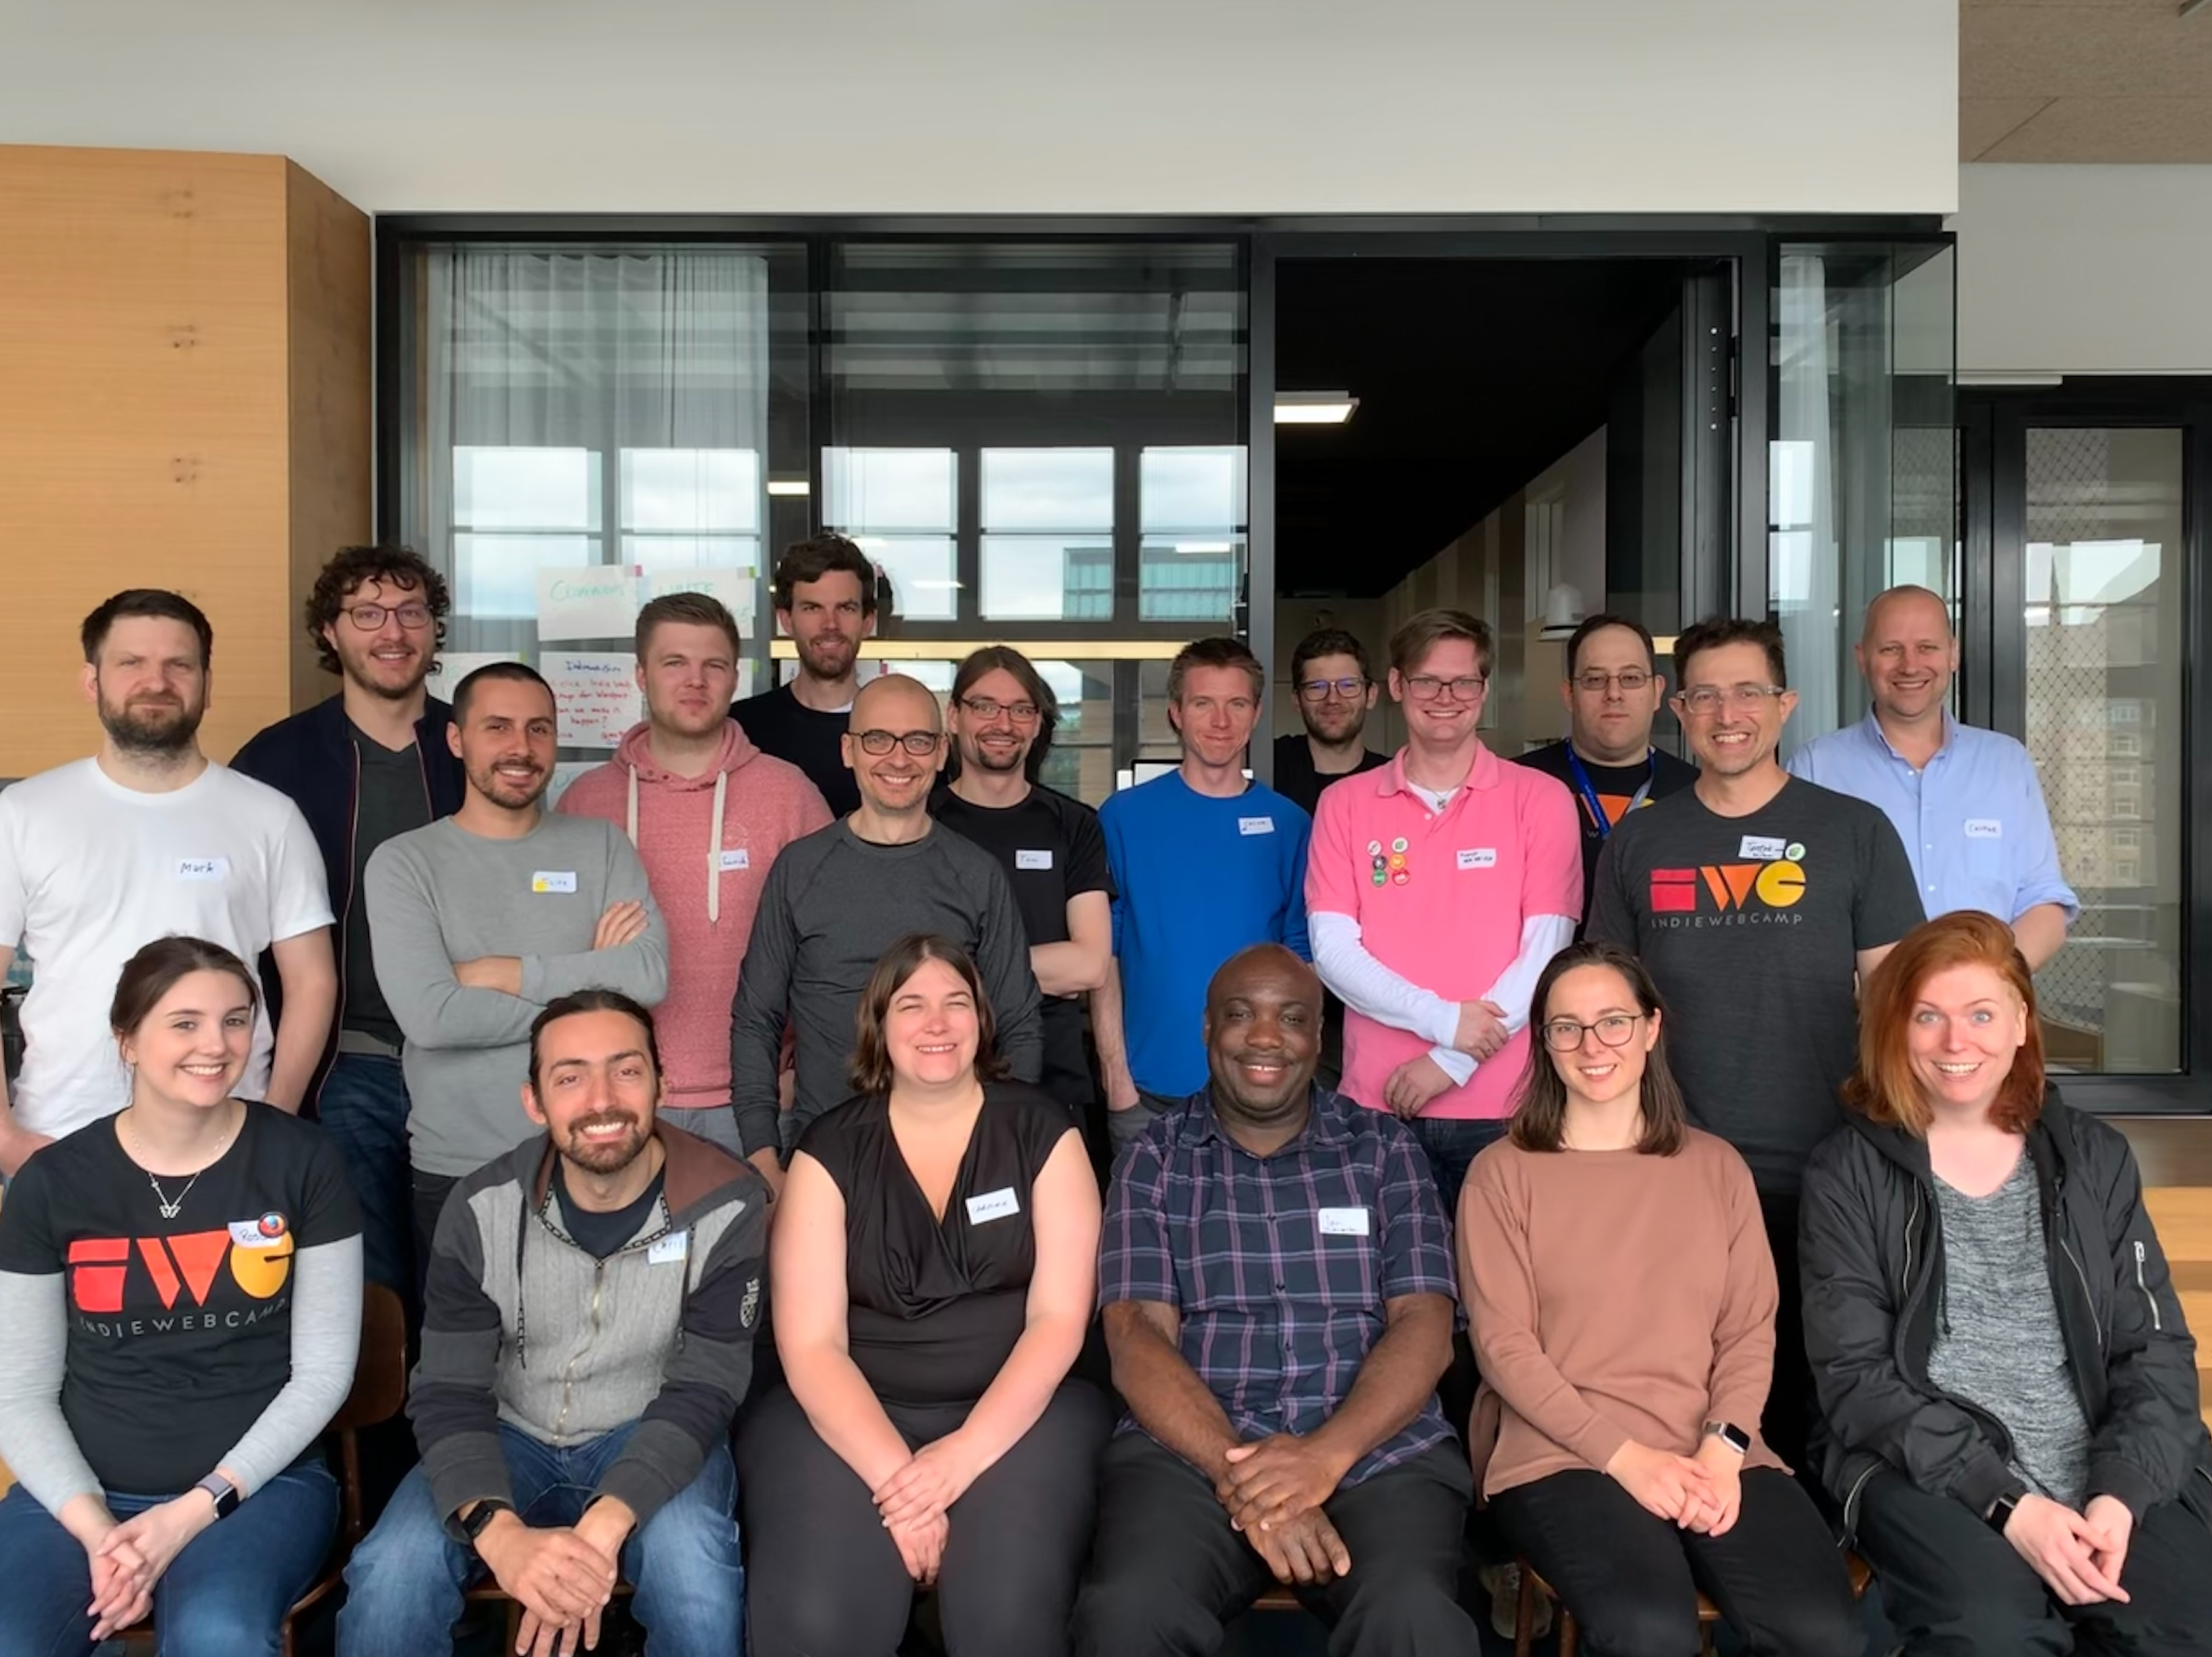 Happy participants at IndieWebCamp Berlin 2019